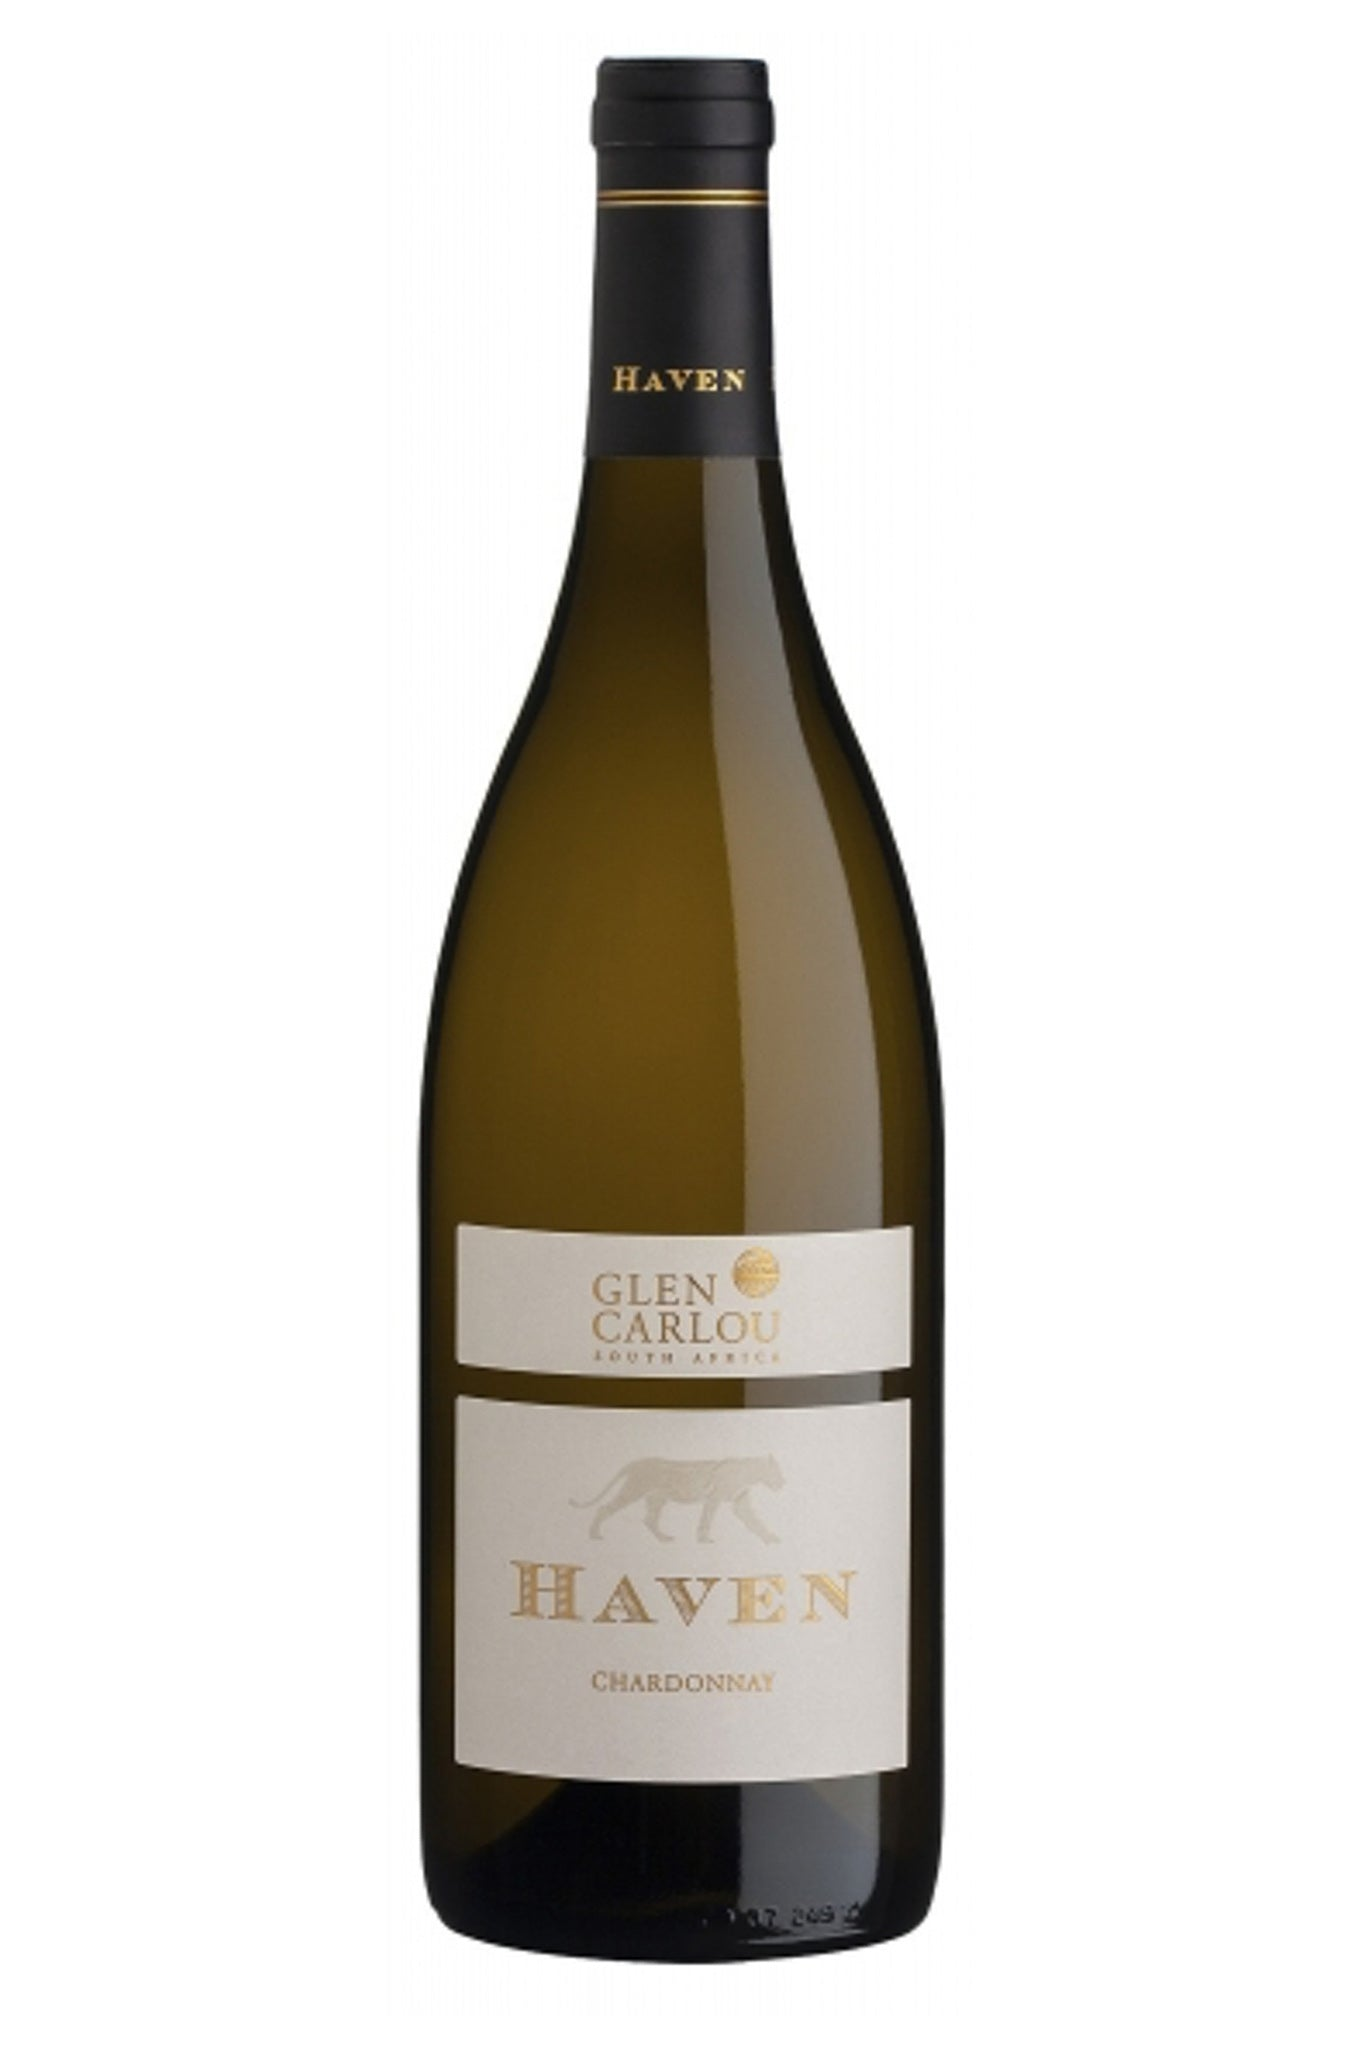 Glen Carlou Haven Unwooded Chardonnay 2016